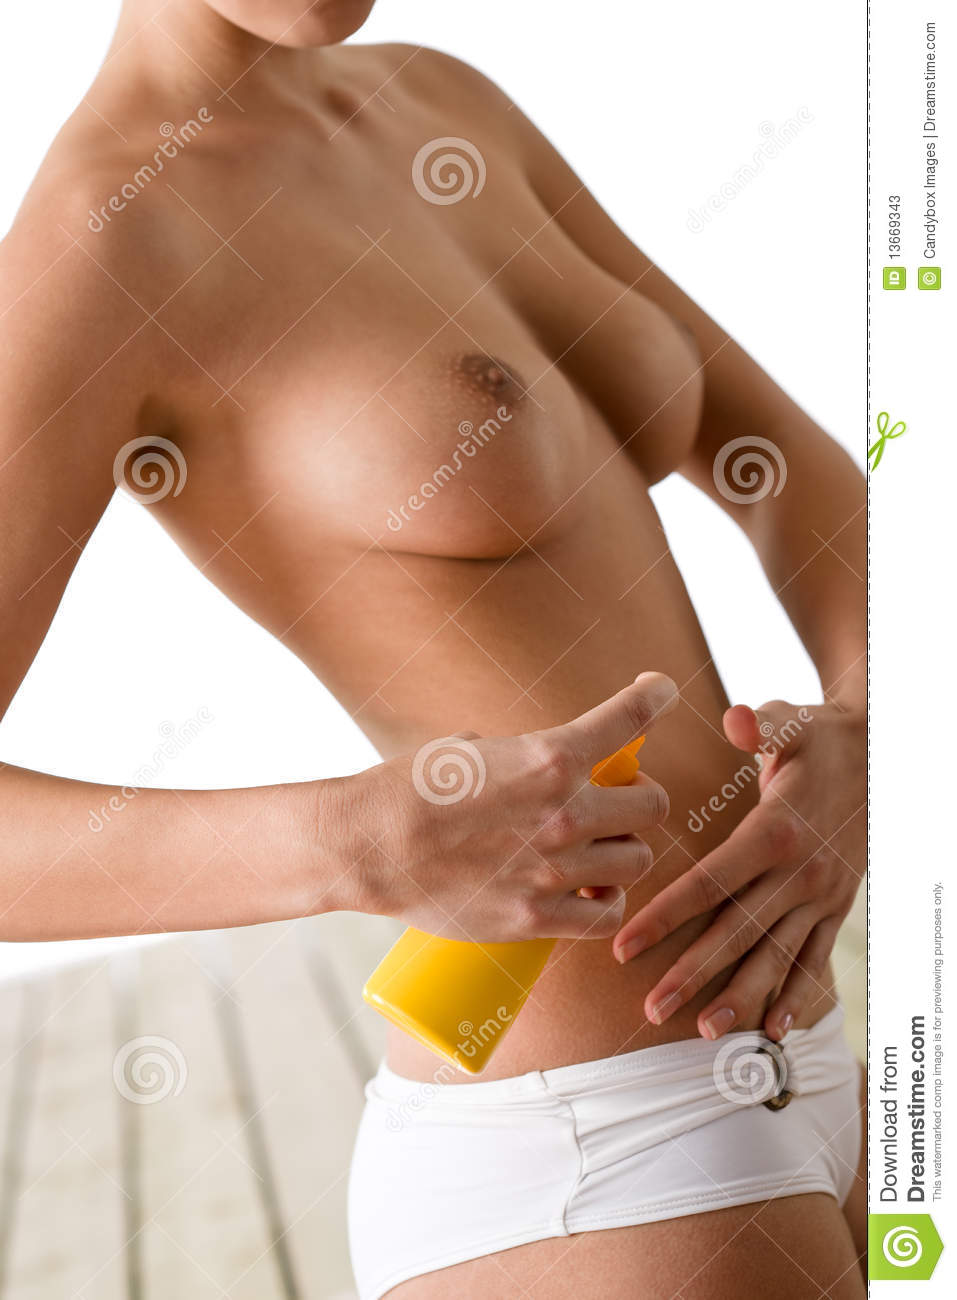 Using lotion women sexy